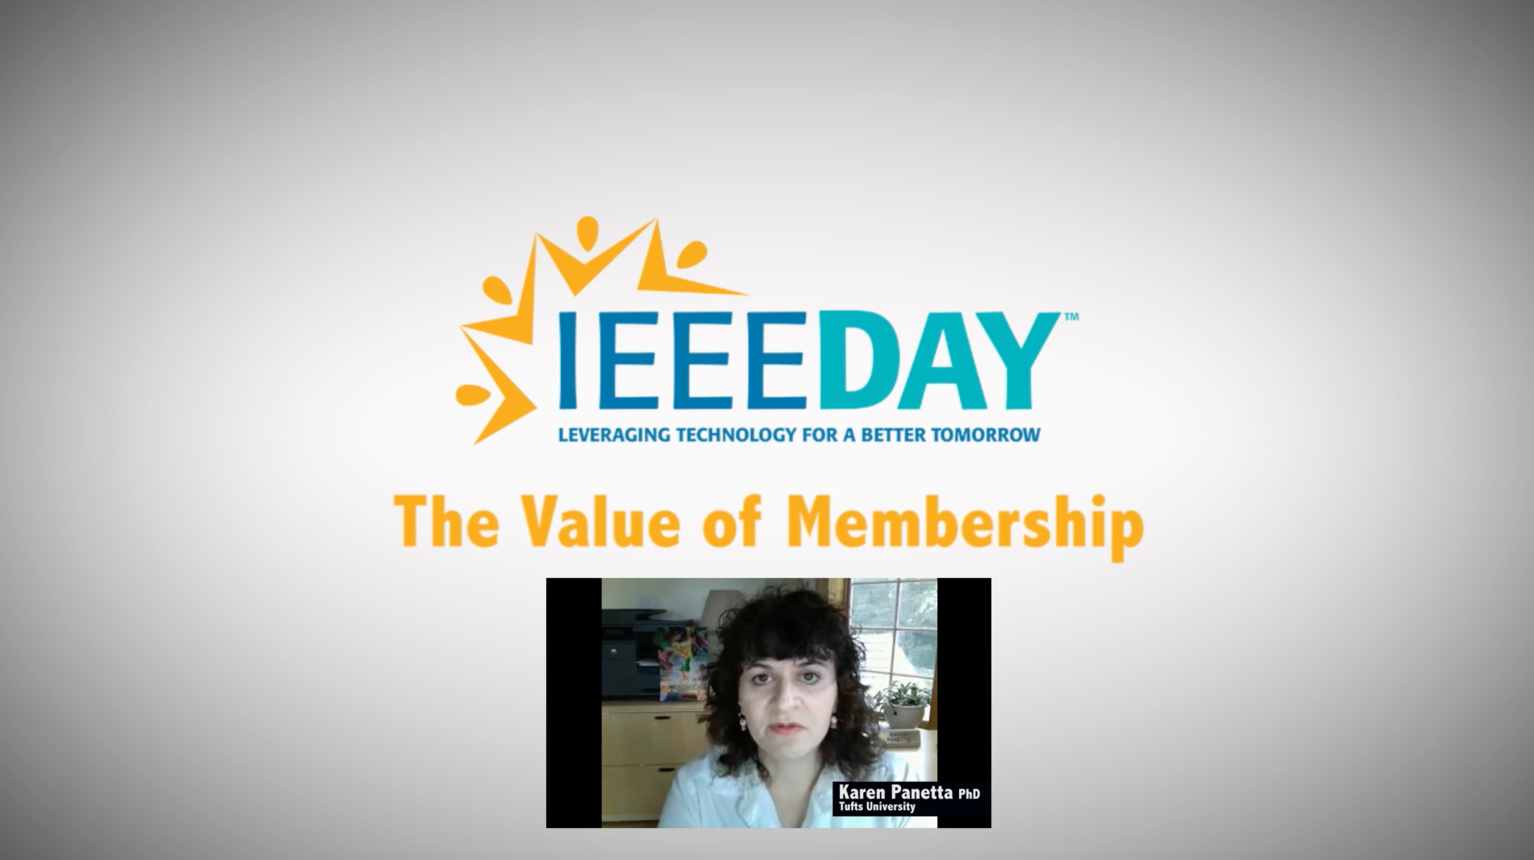 Karen Panetta - IEEE Value of Membership Testimonial